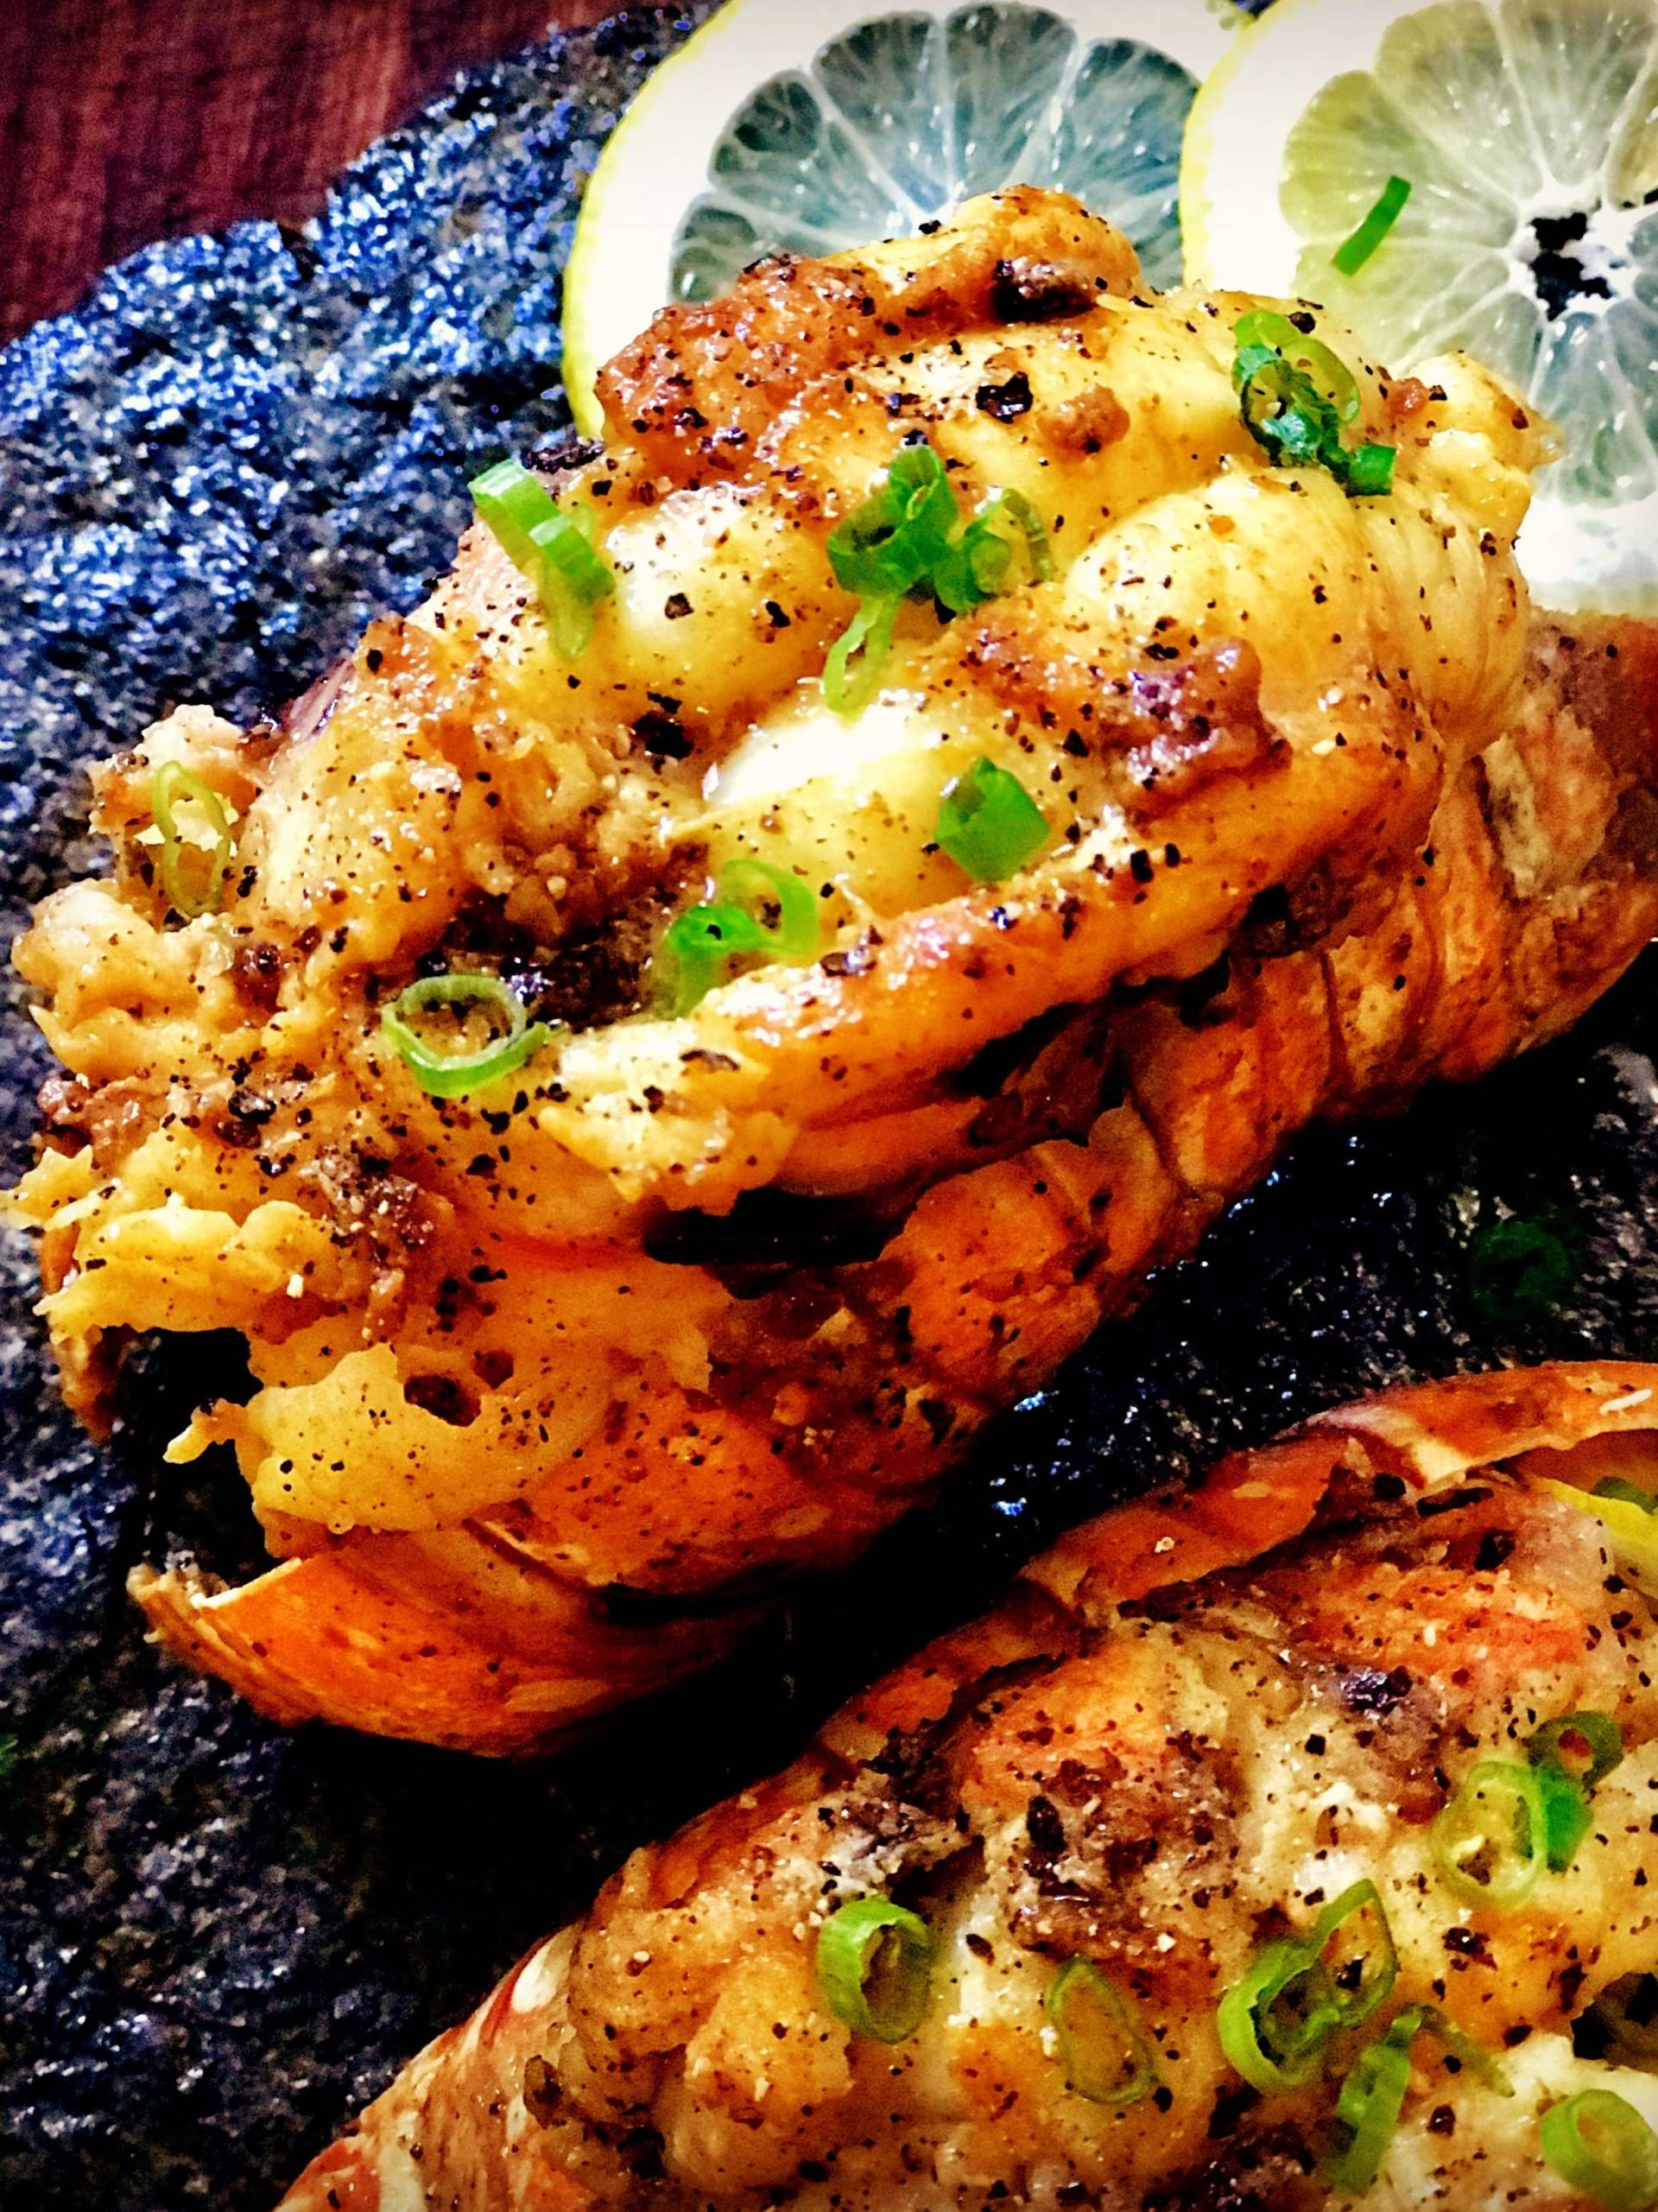 A lemon pepper lobster tail by Andrea Drummer, winner of Netflix's first episode of Cooking on High.